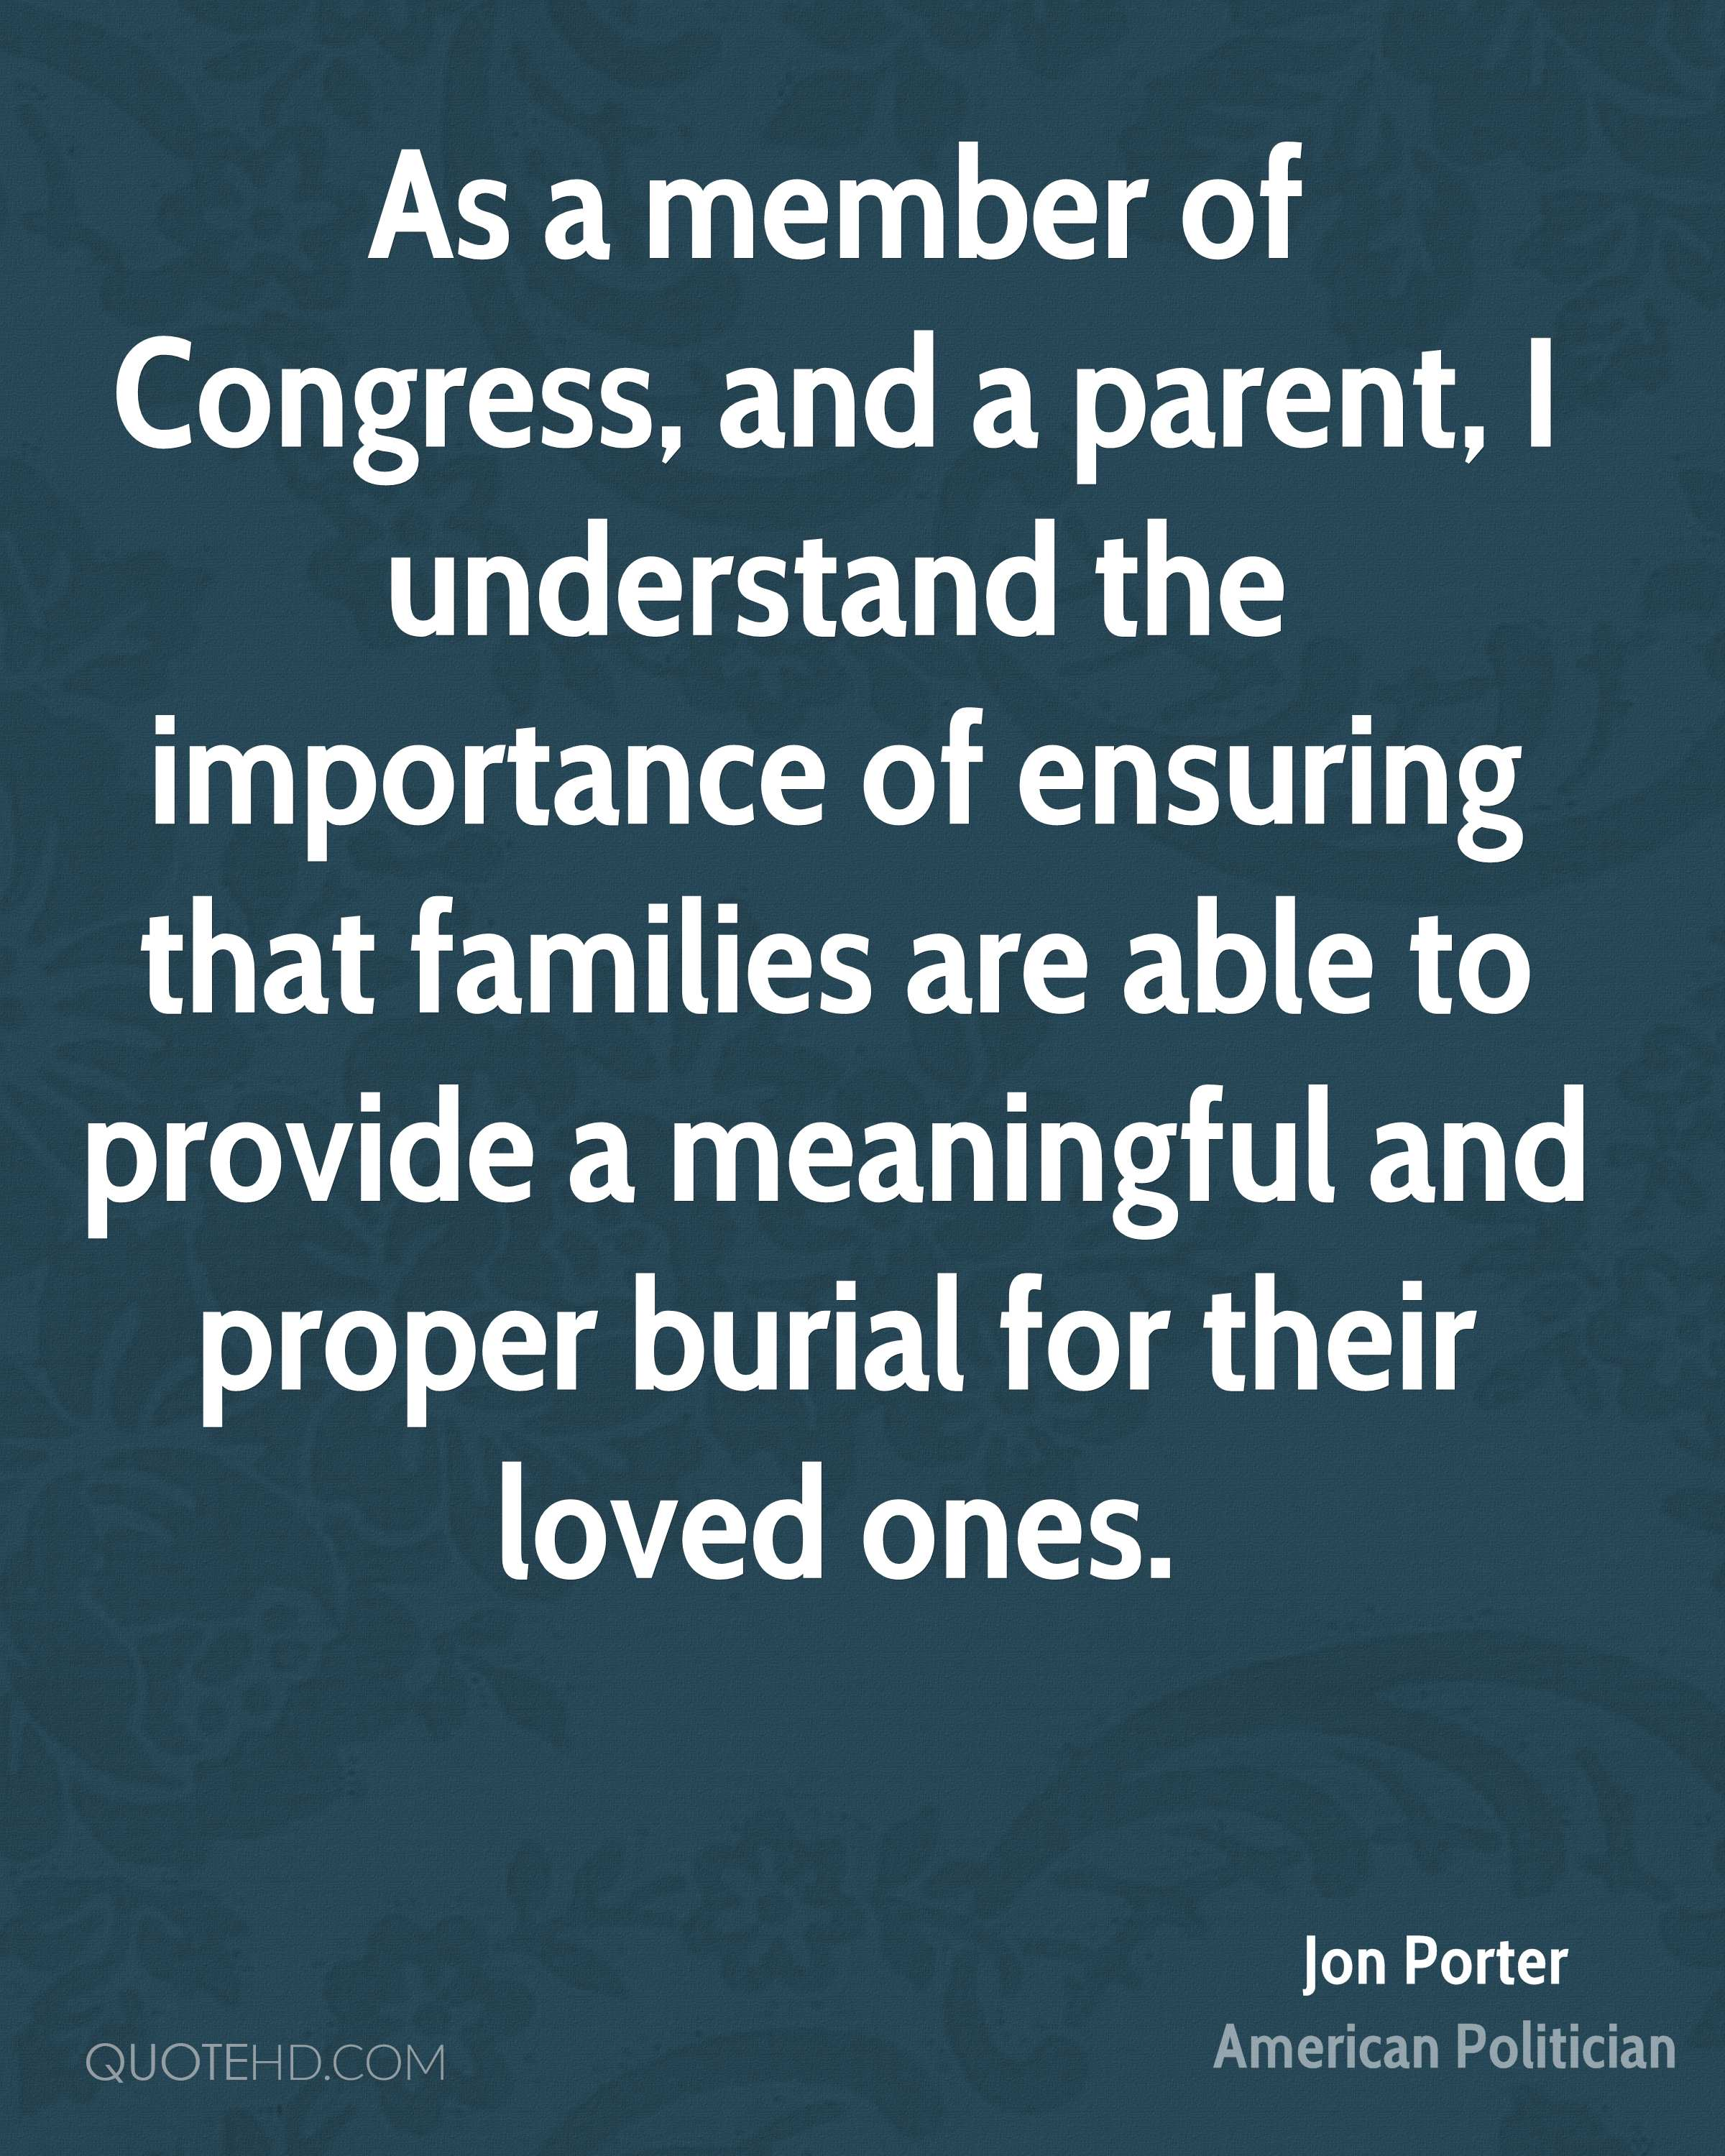 As a member of Congress, and a parent, I understand the importance of ensuring that families are able to provide a meaningful and proper burial for their loved ones.